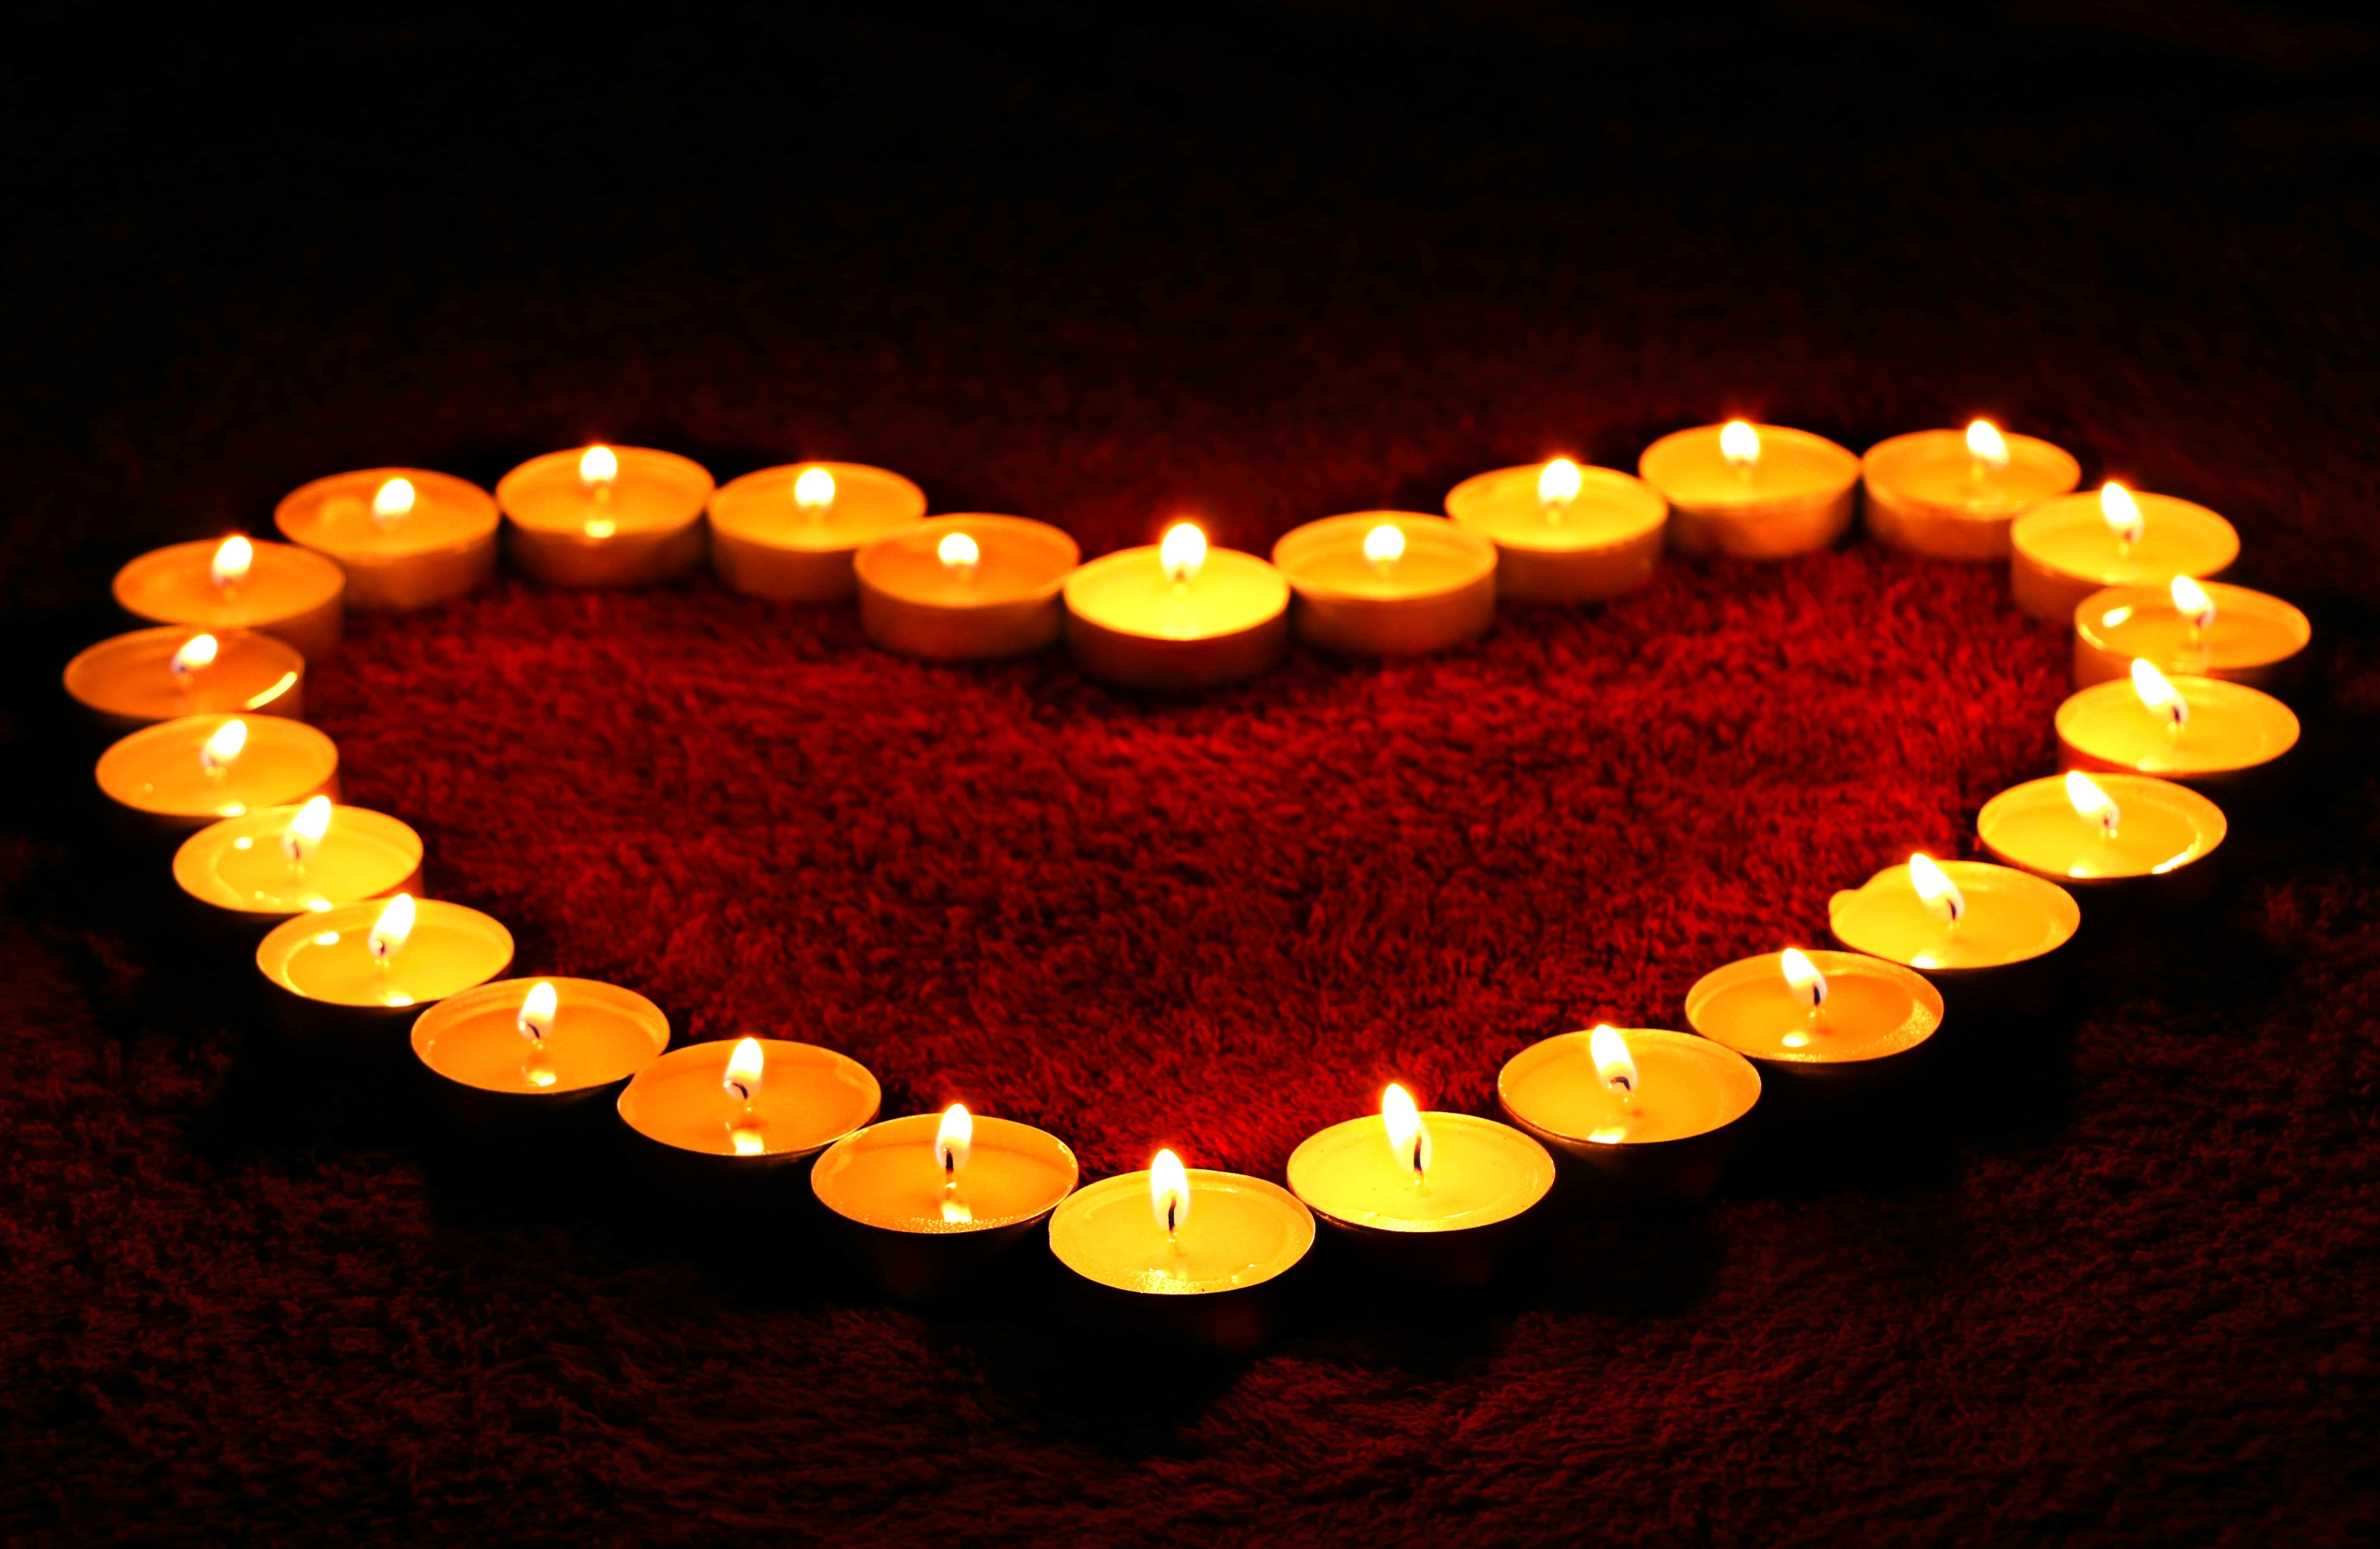 UHR hospice valentine candles.jpeg